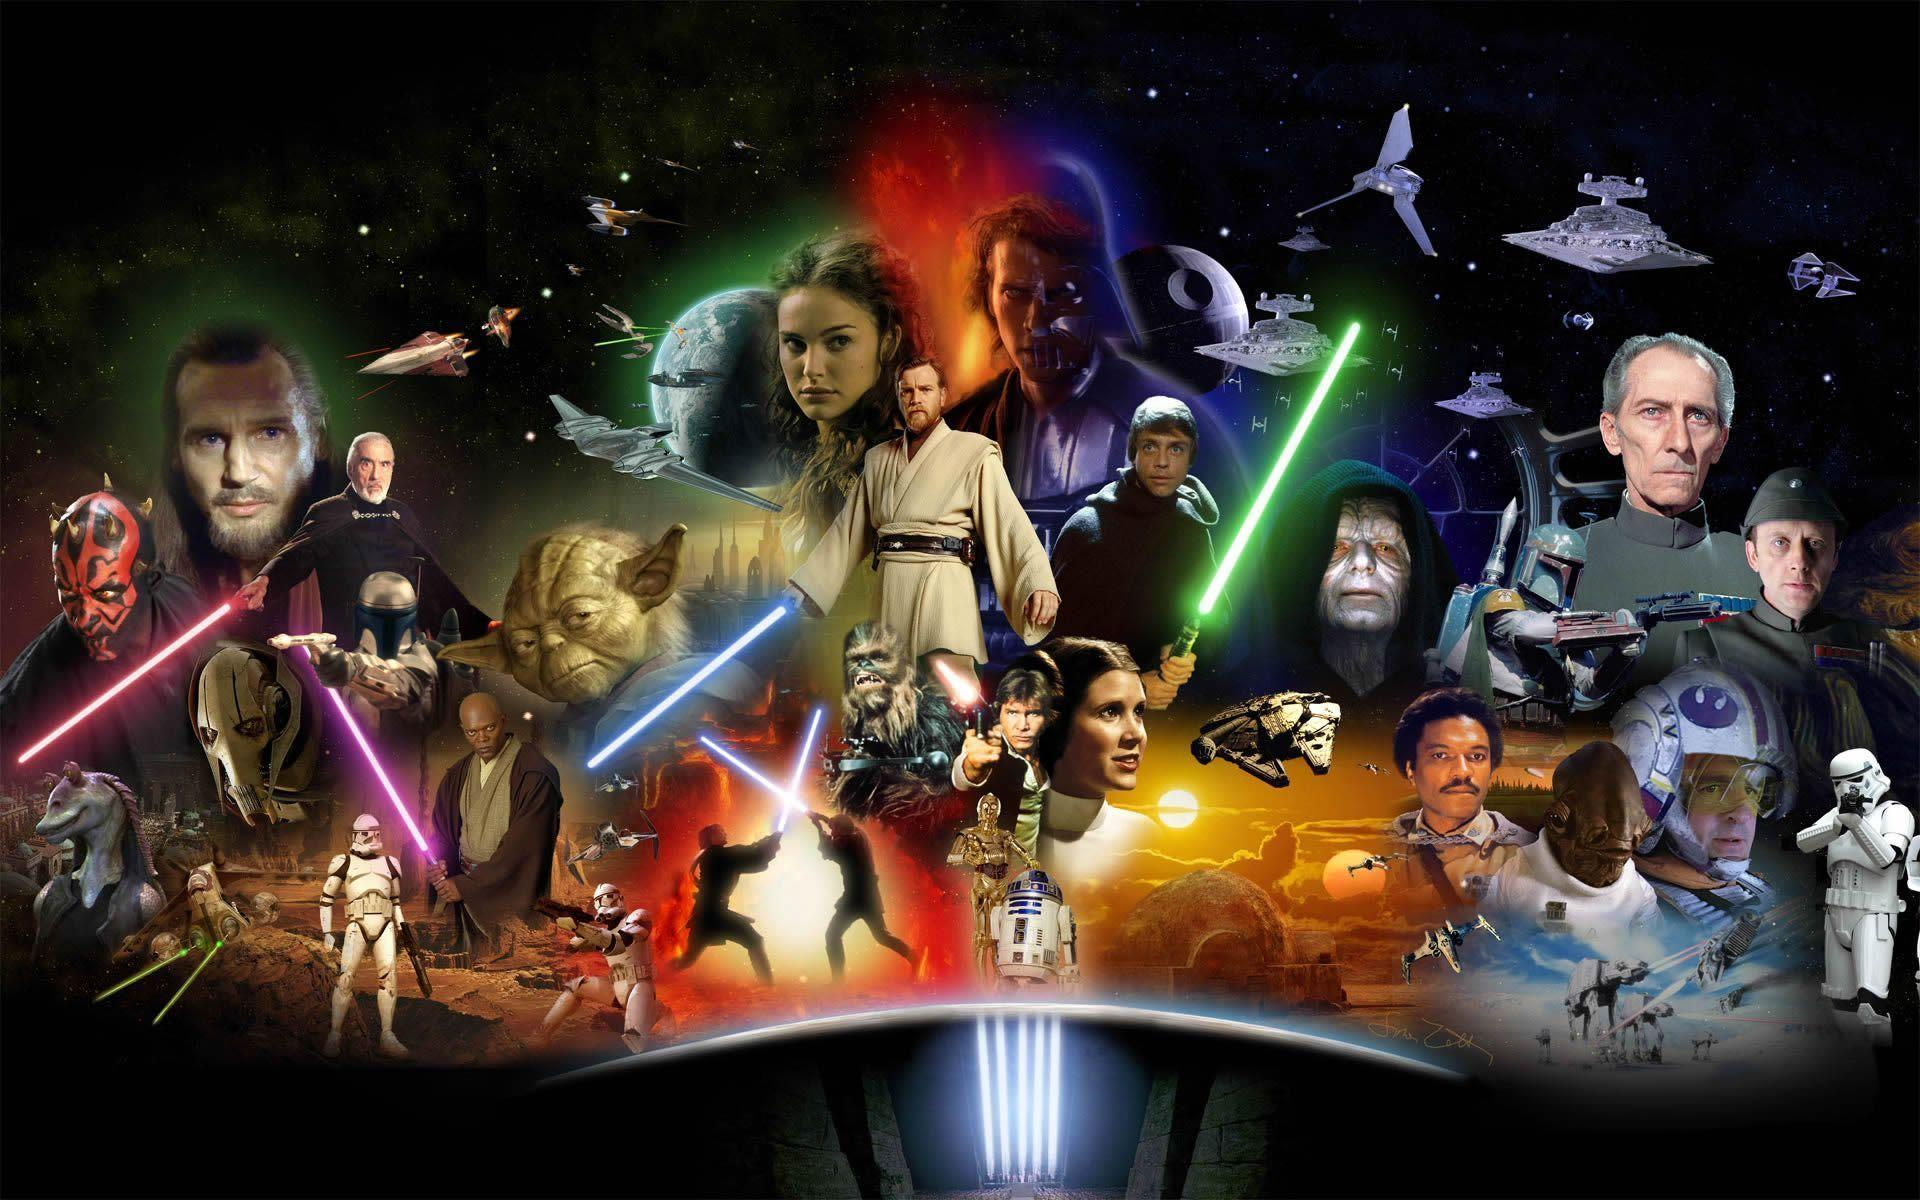 Epic Star Wars Wallpapers Top Free Epic Star Wars Backgrounds Wallpaperaccess